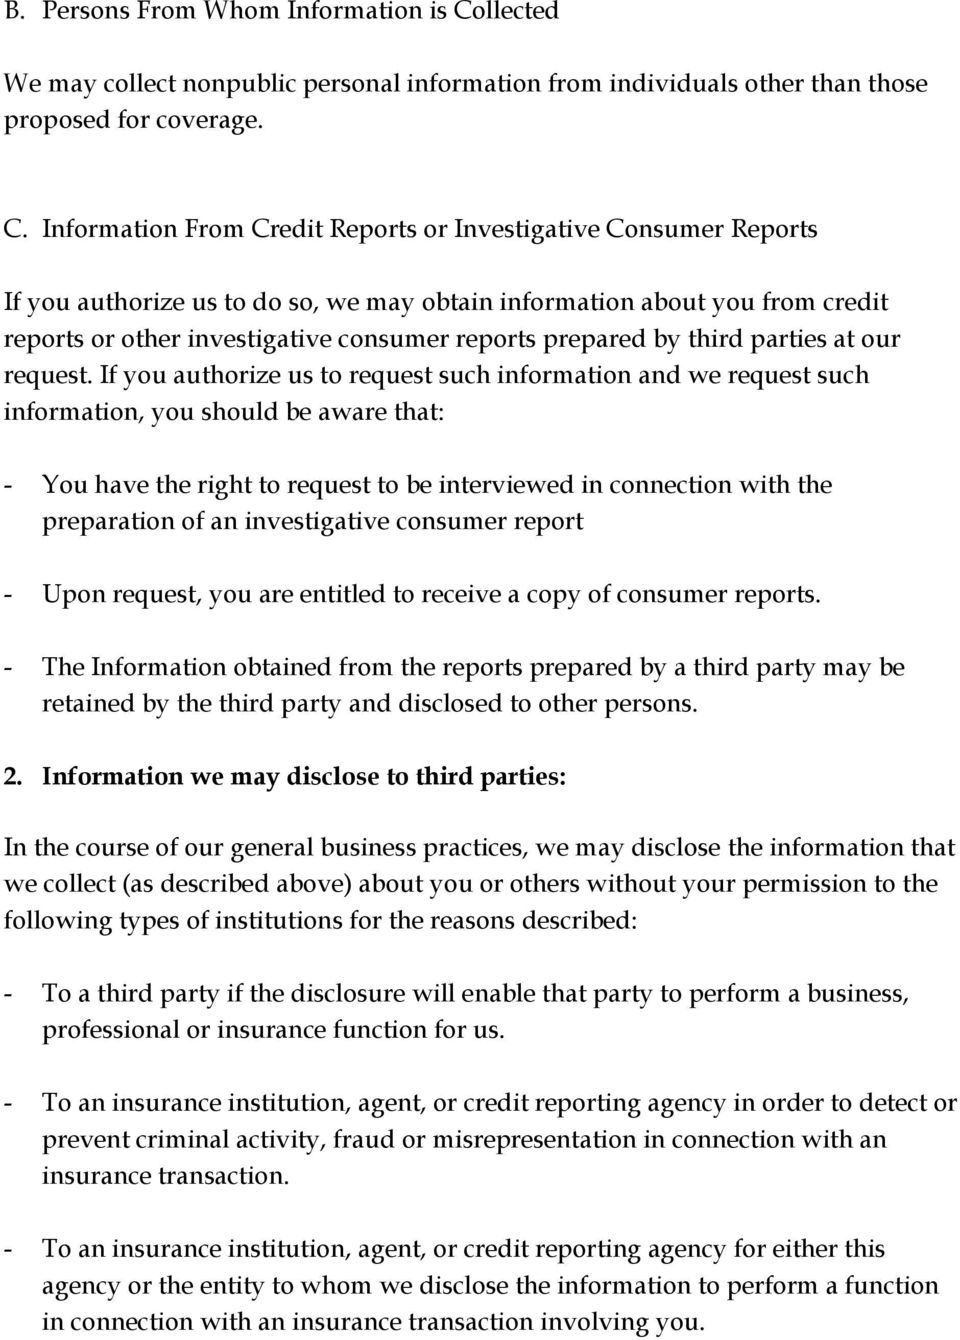 Information From Credit Reports or Investigative Consumer Reports If you authorize us to do so, we may obtain information about you from credit reports or other investigative consumer reports